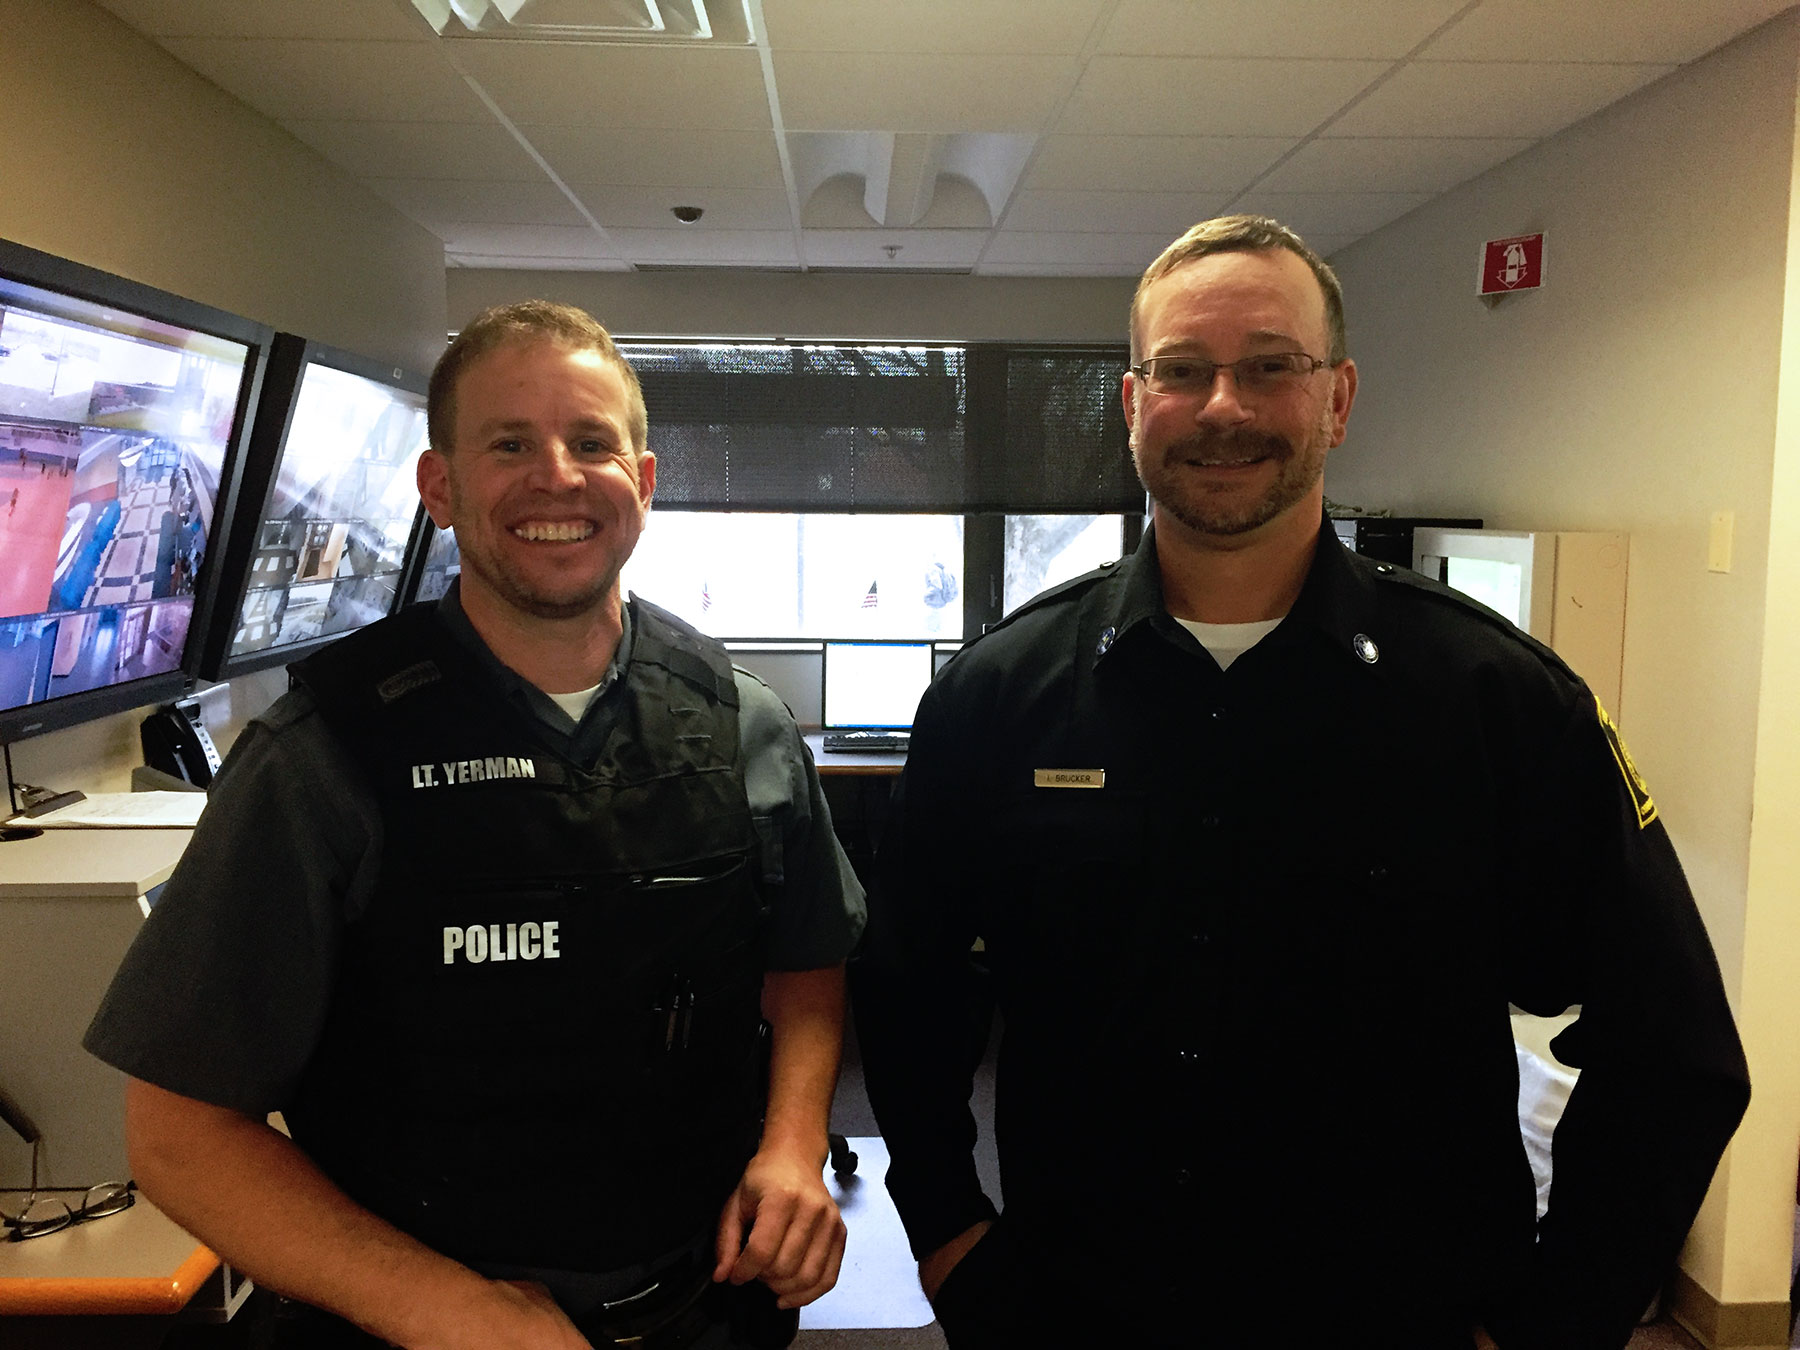 SUNY Poly university police in command center showing no-shave November faces.